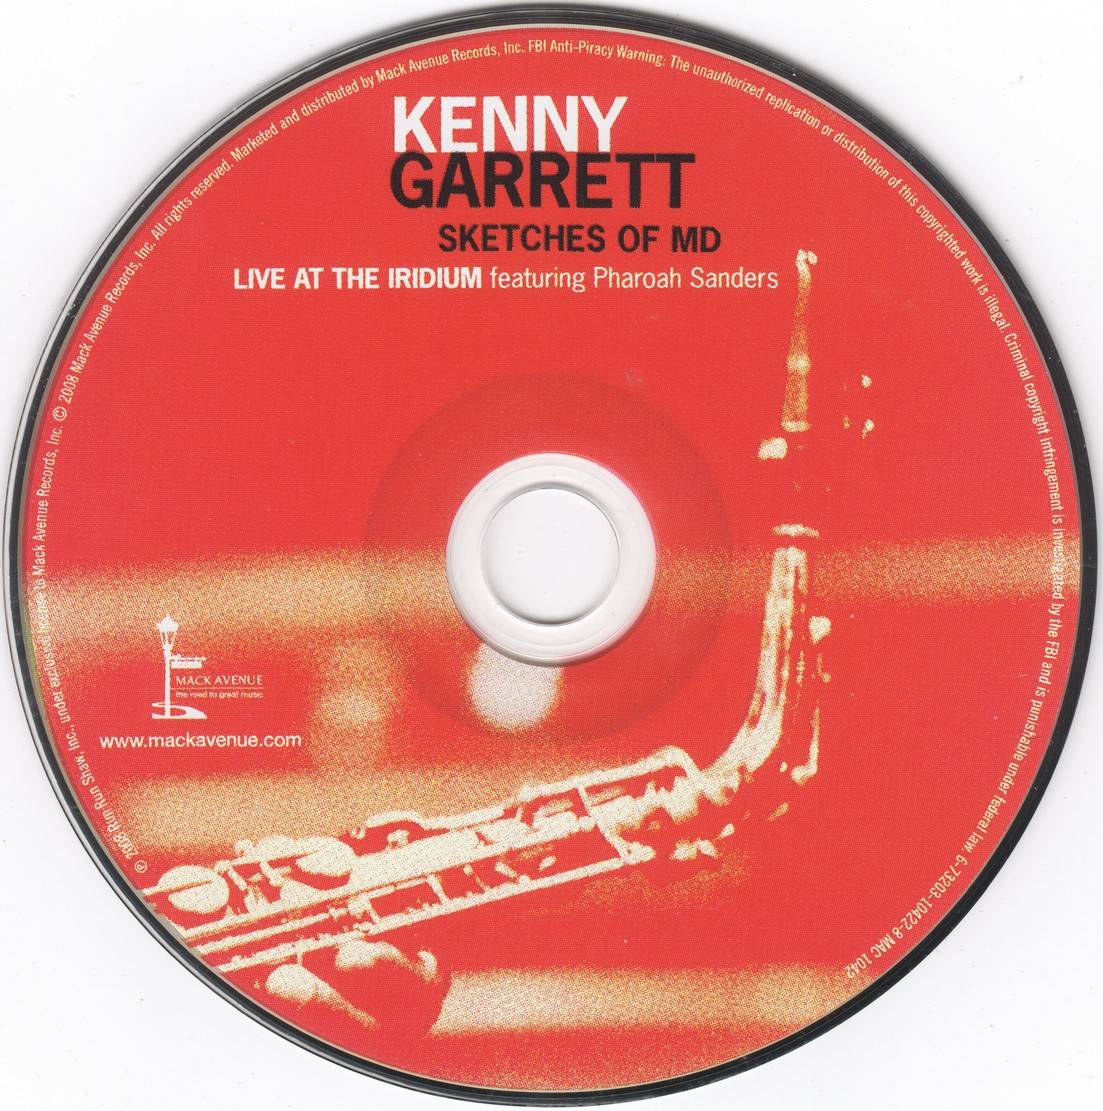 Kenny Garrett - Sketches of MD: Live at the Iridium (2008) {Mack Avenue MAC 1042} (ft. Pharaoh Sanders}